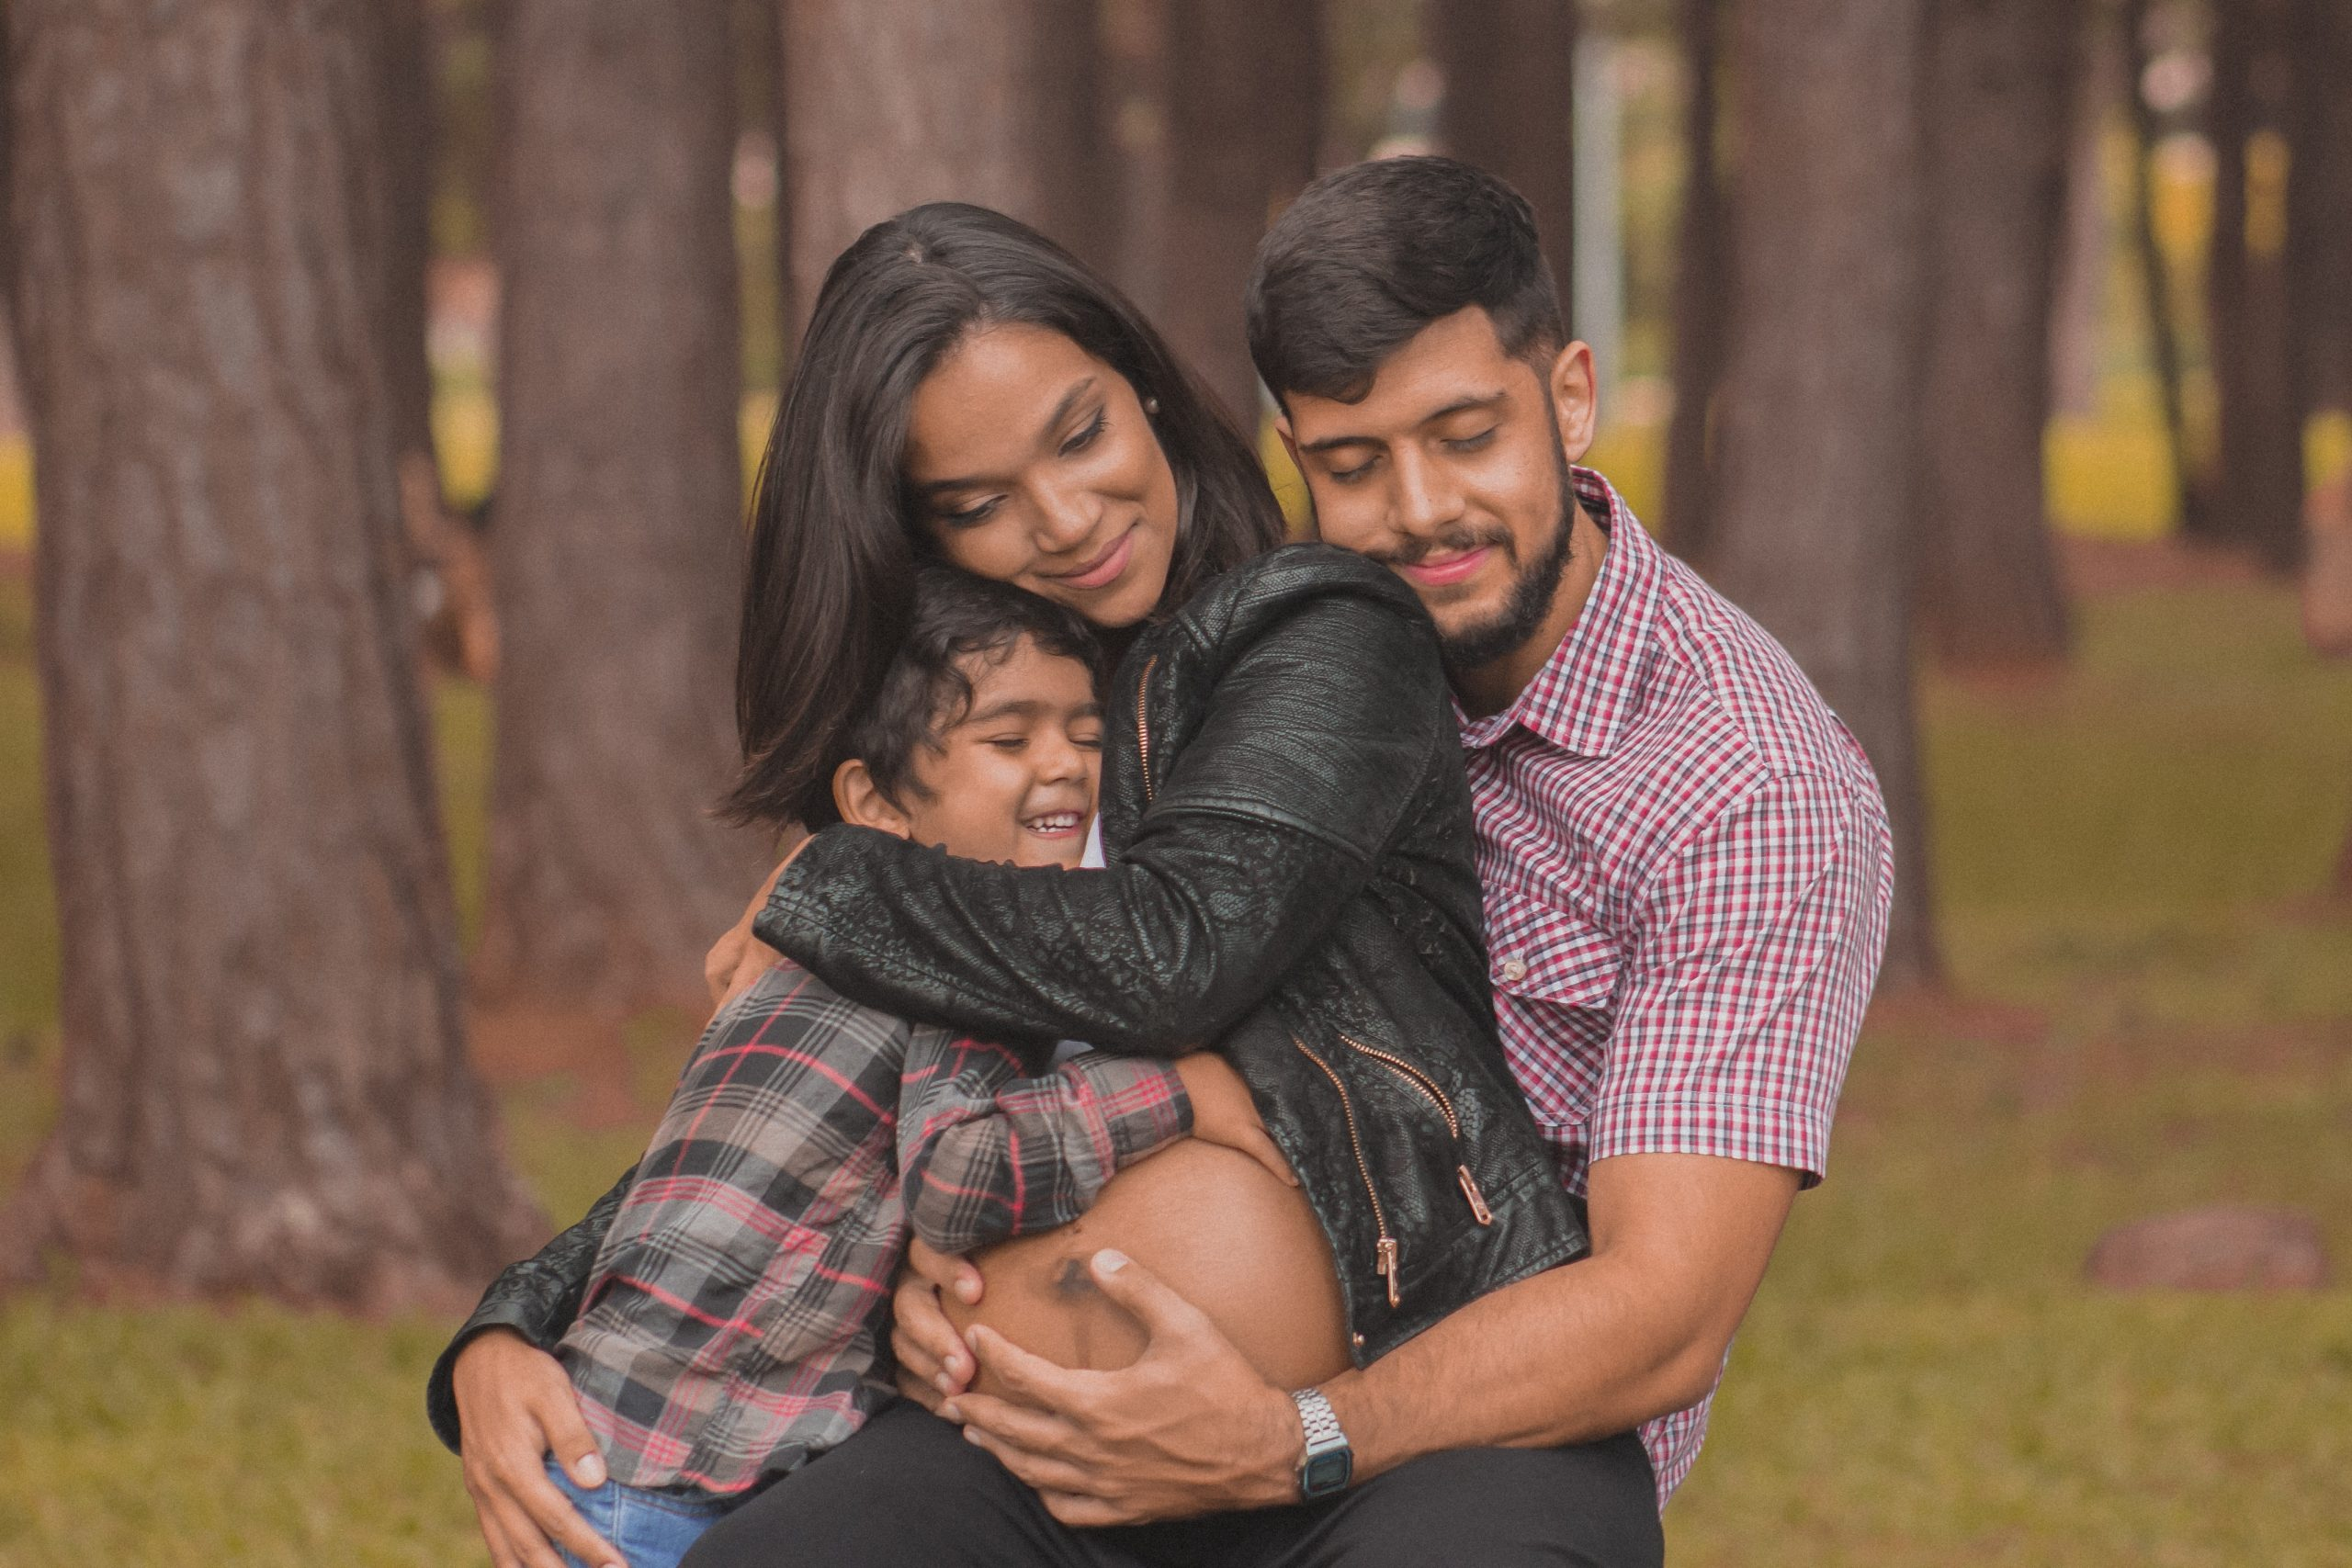 A family of a man, pregnant woman, young son embrace each other in the woods.